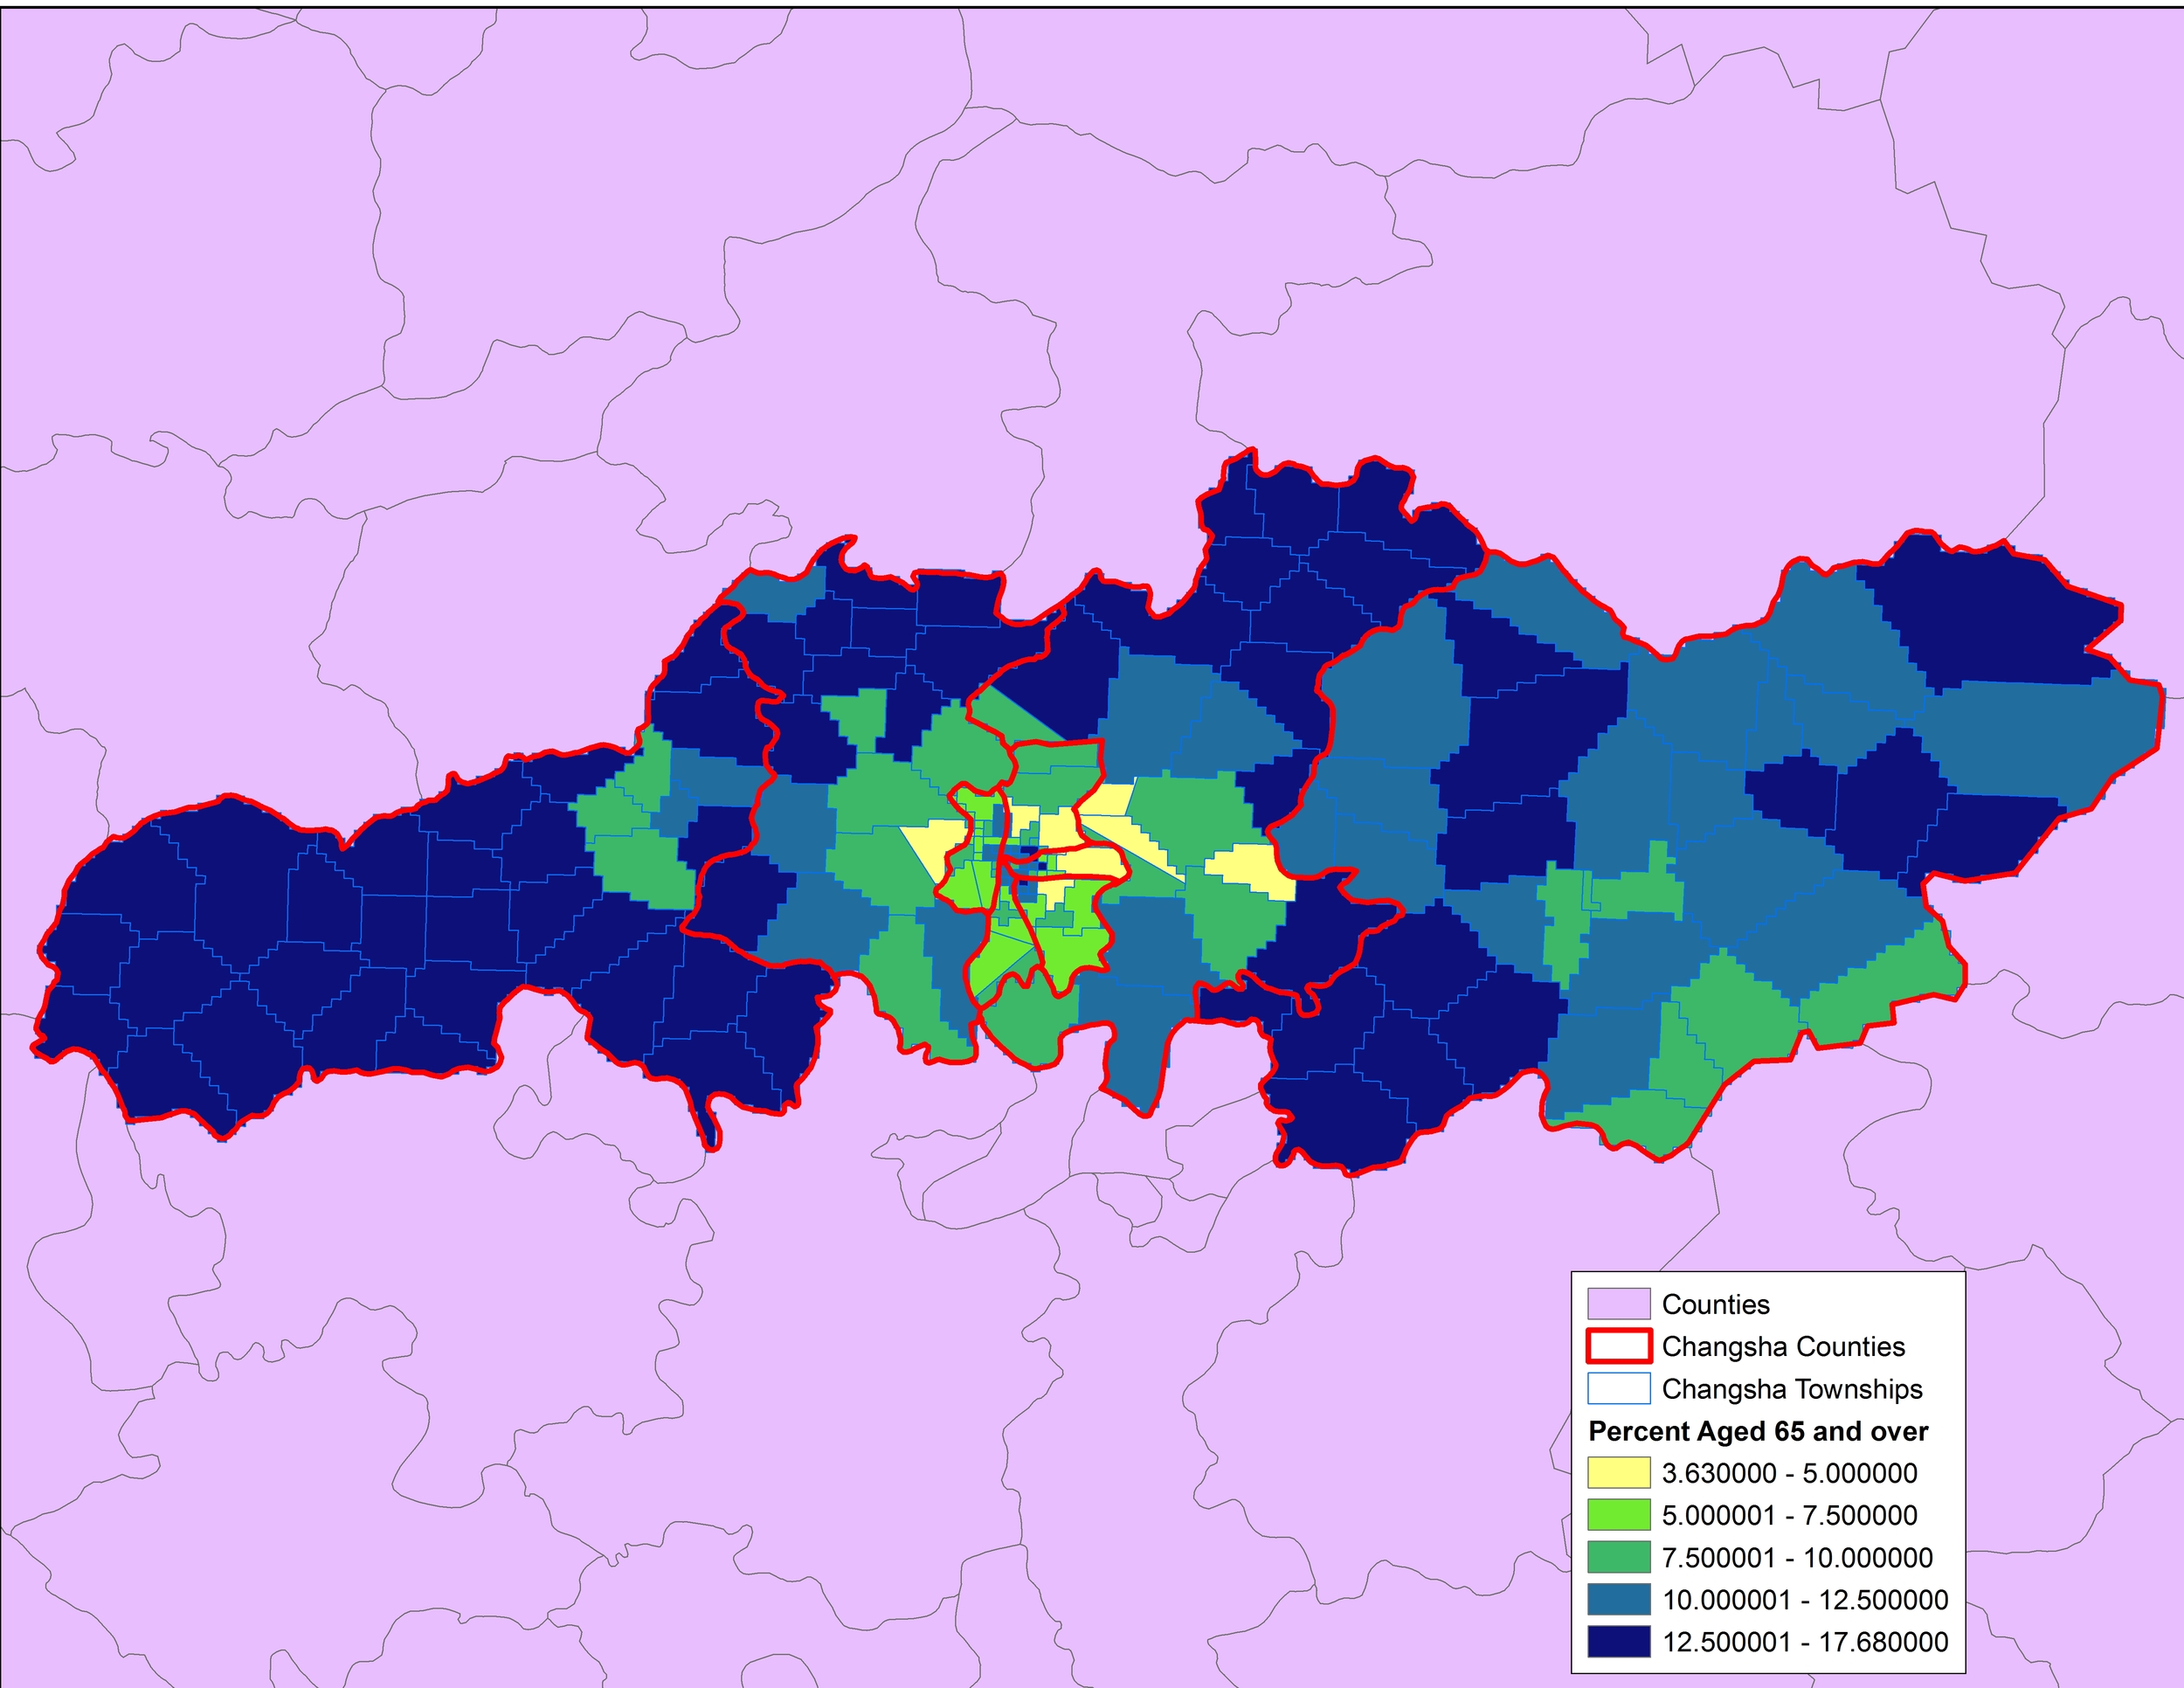 2013 Estimated Population - Percent Aged 65 and over